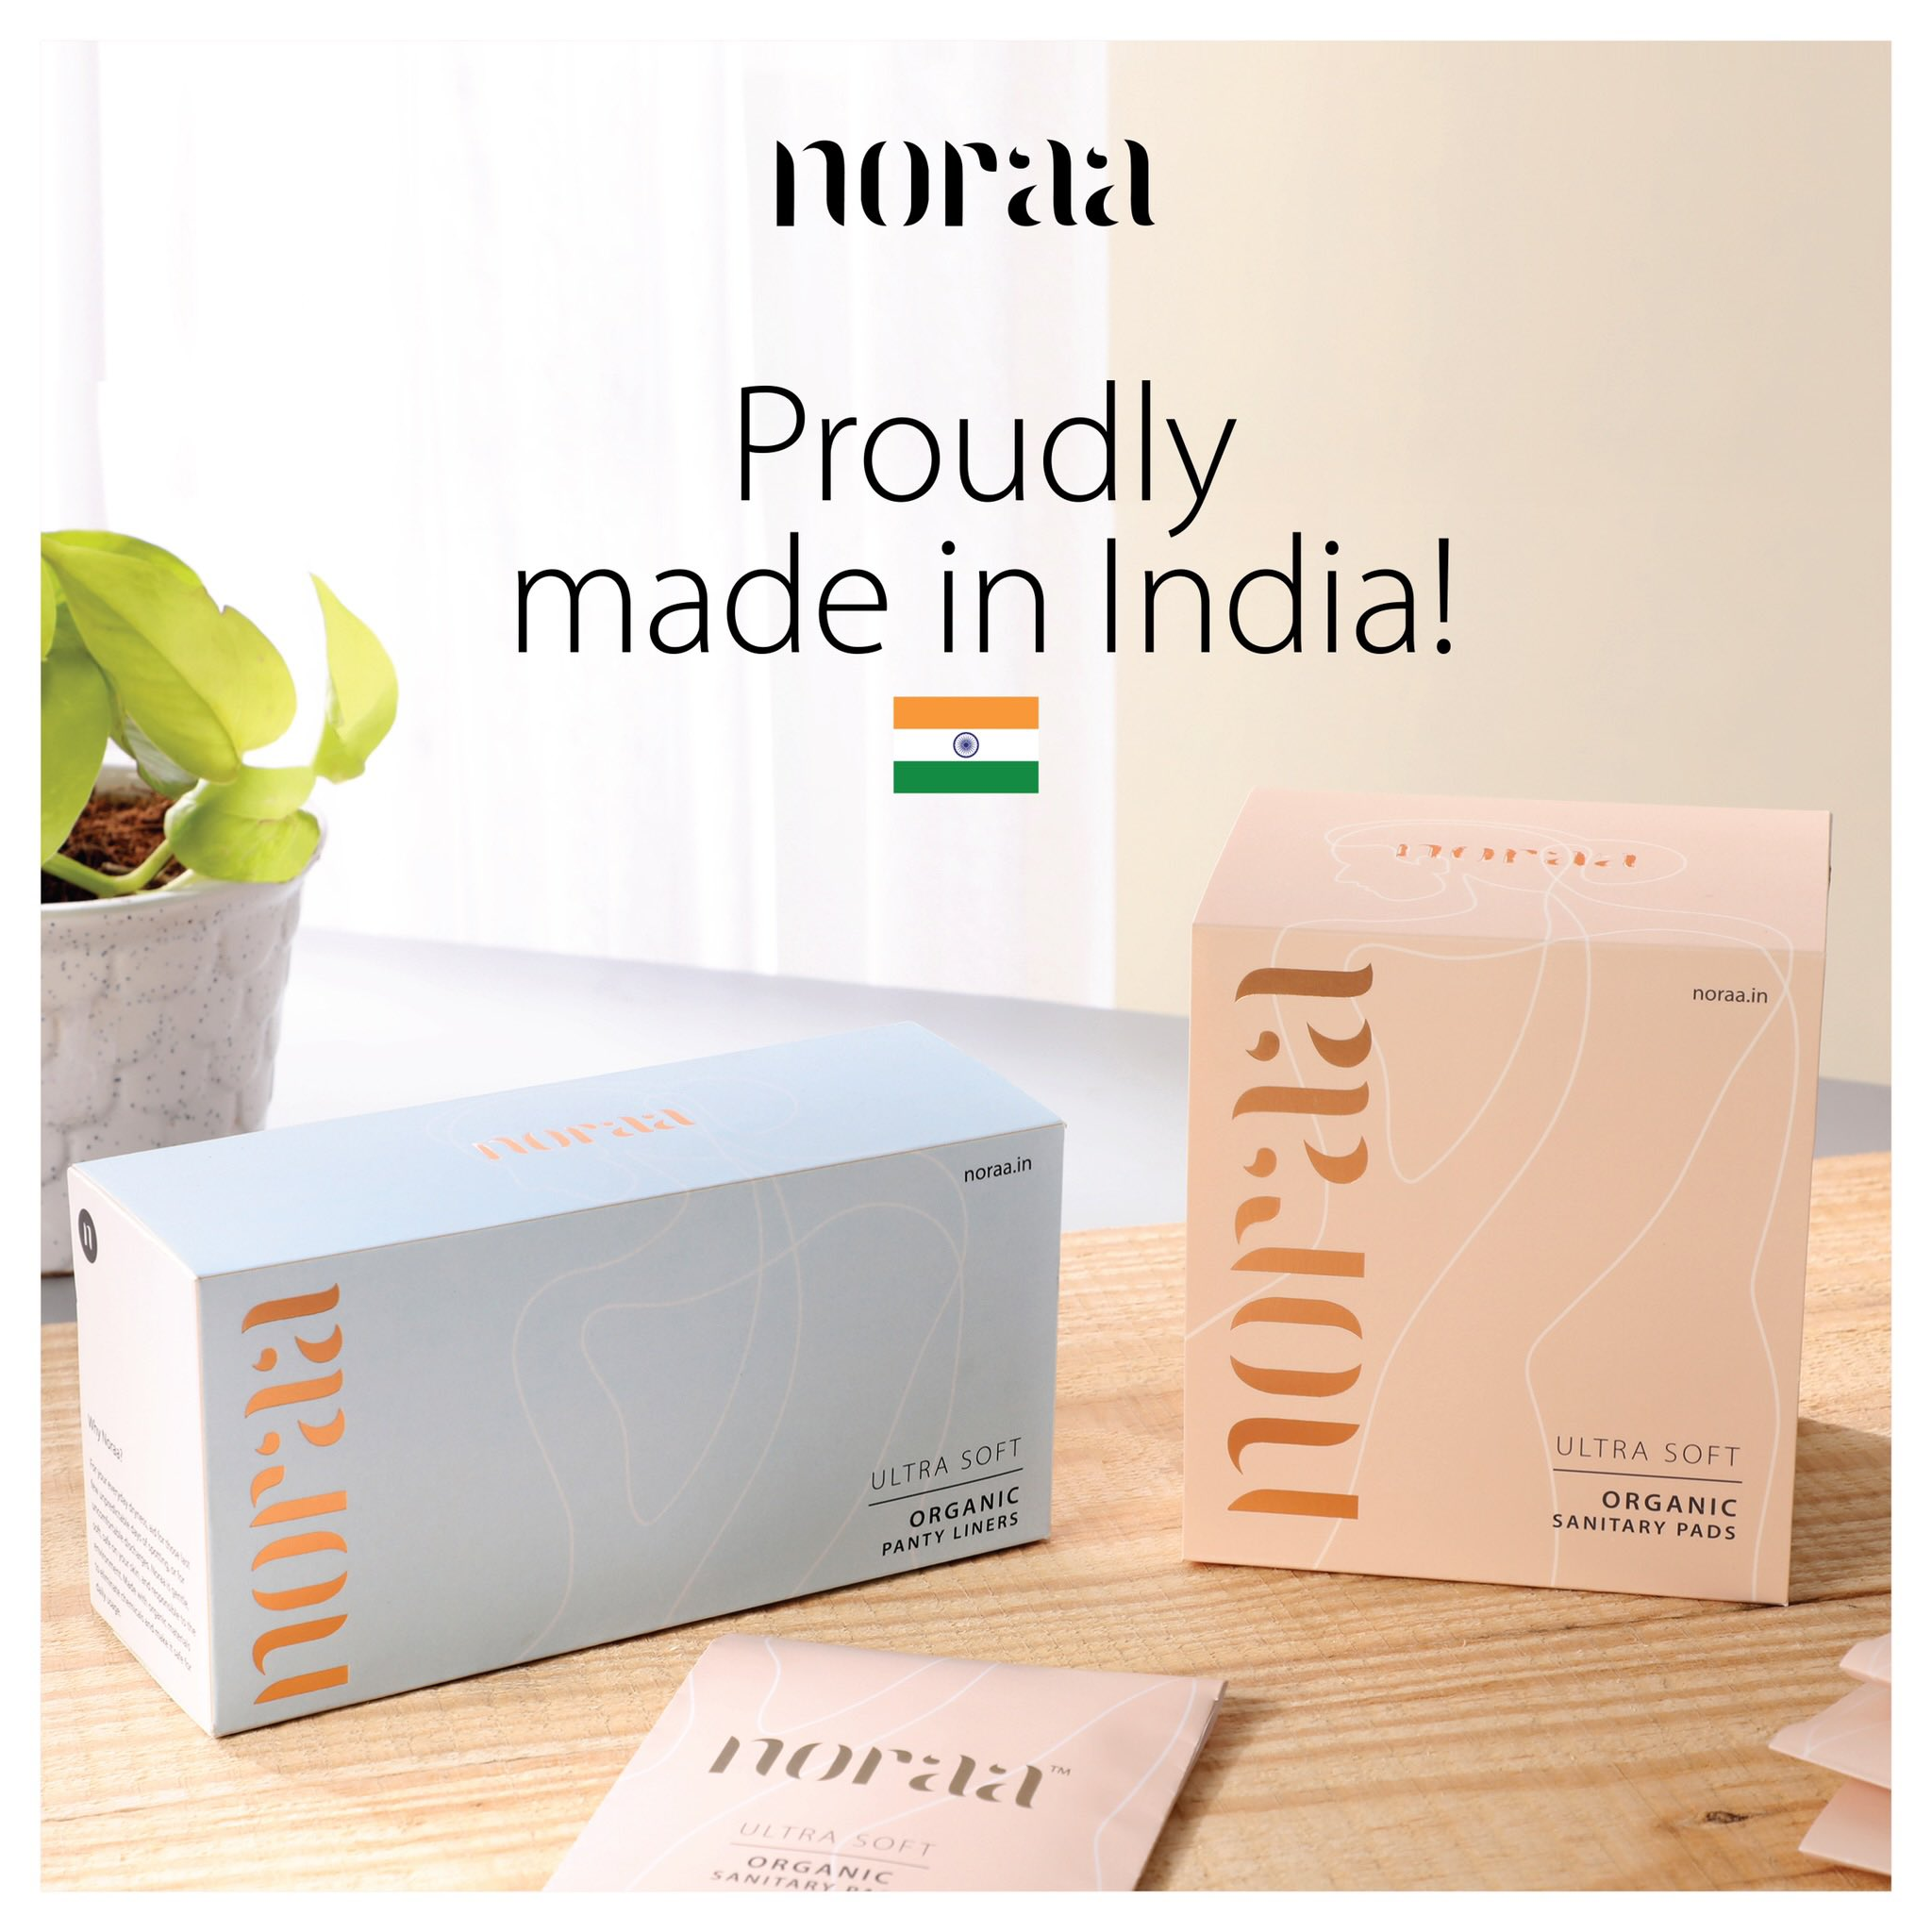 Noraa: Made in India Feminine Hygiene Products